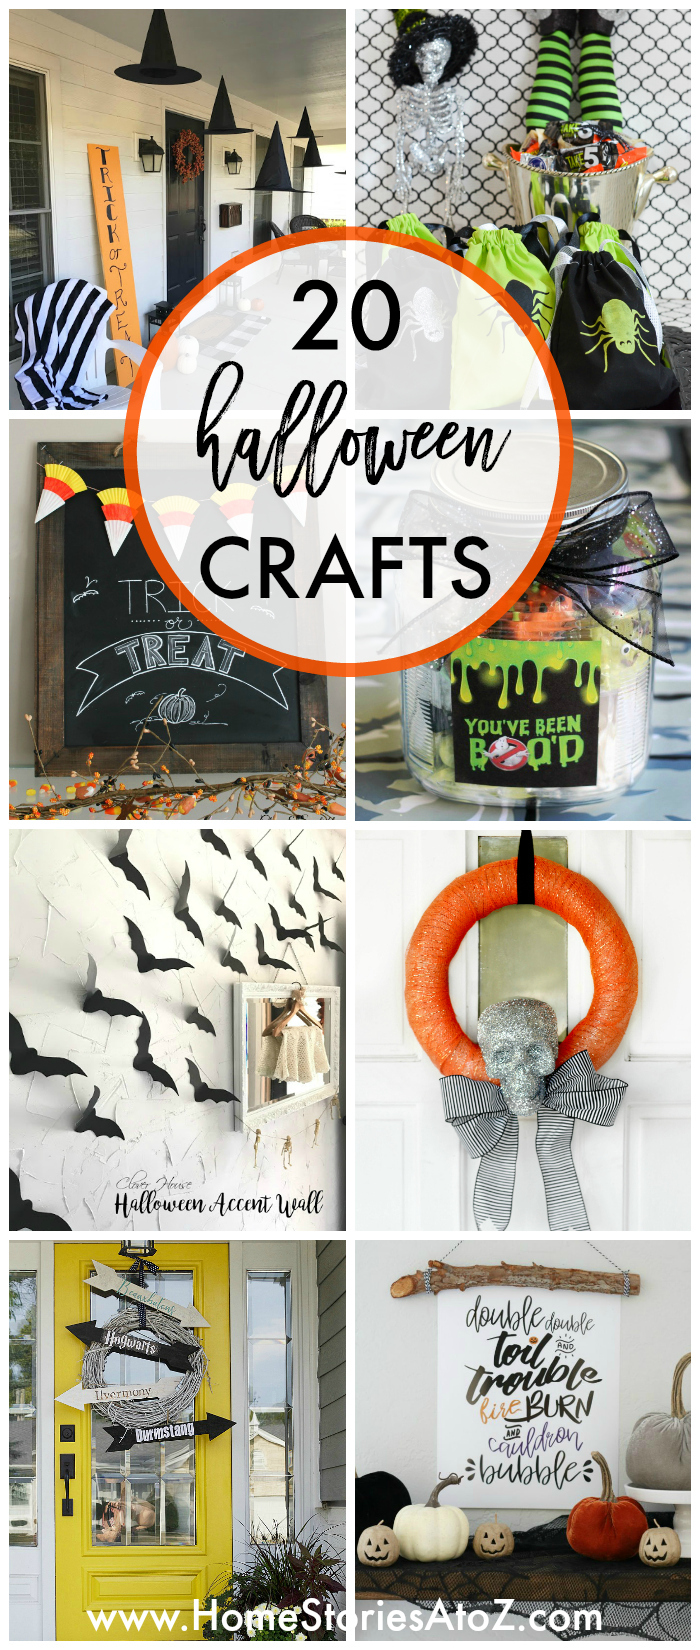 20 Halloween Craft Ideas - Home Stories A to Z